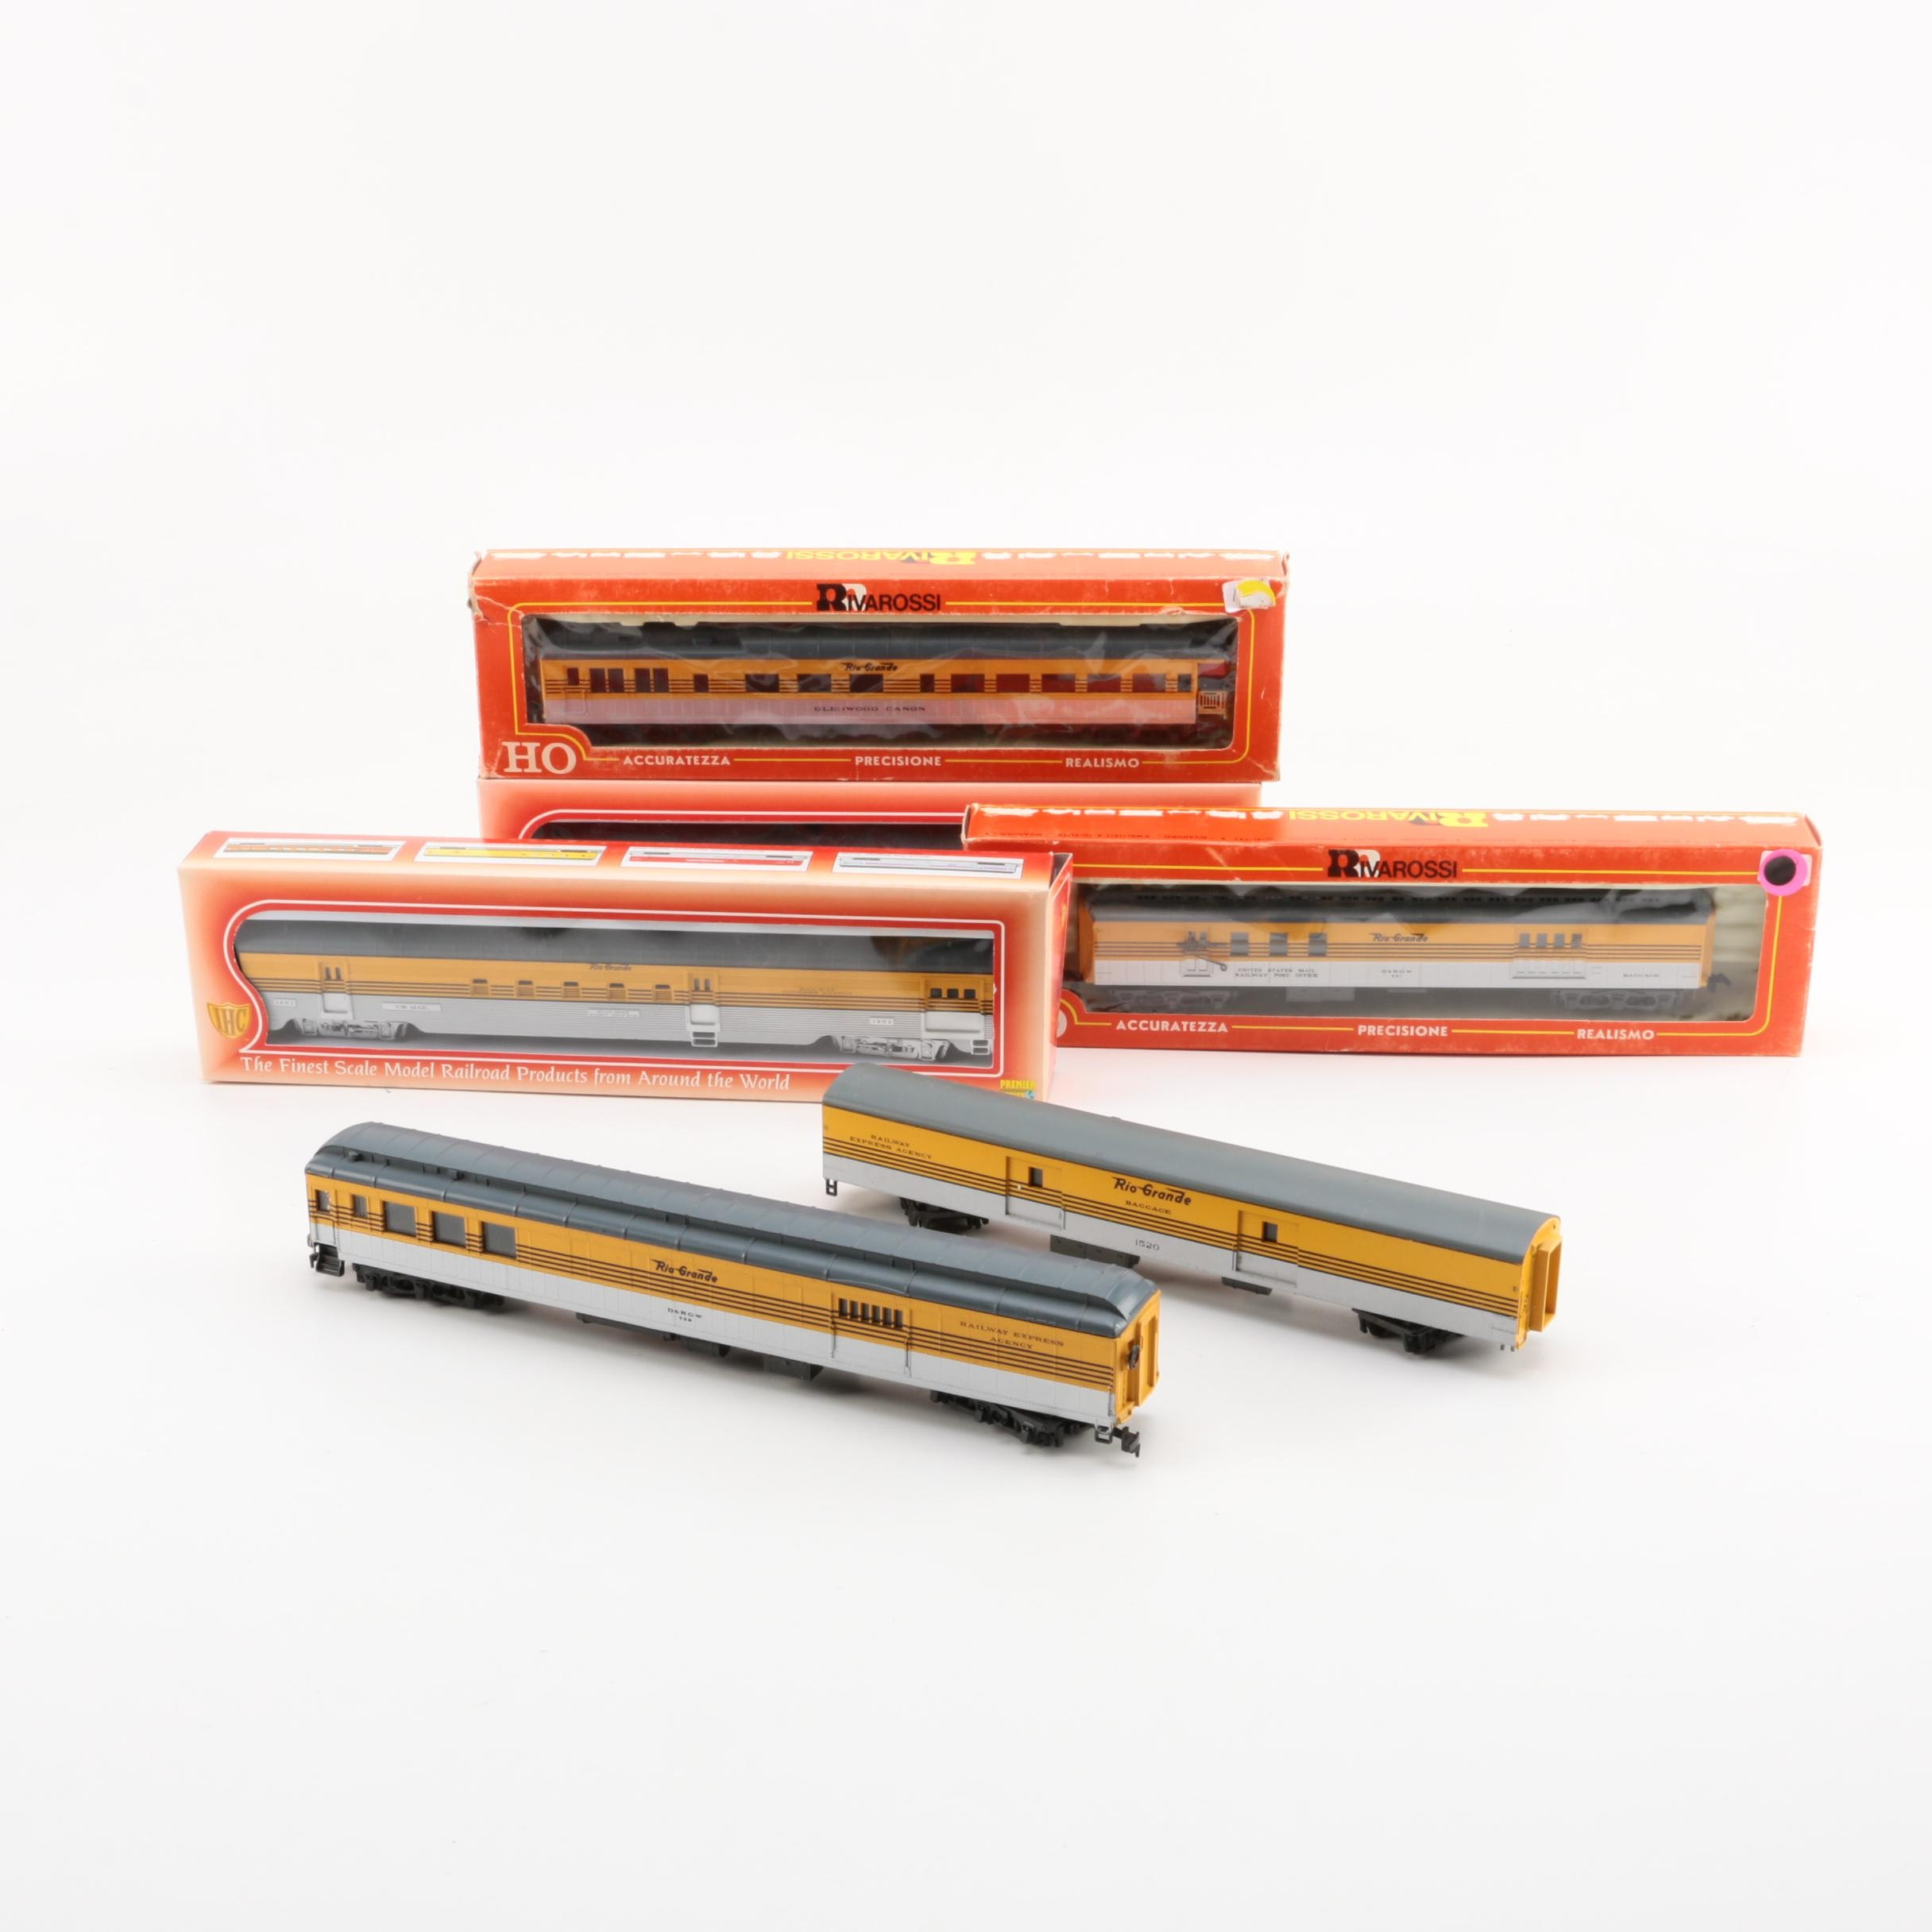 Rio Grande Passenger Train Cars by Rivarossi and IHC